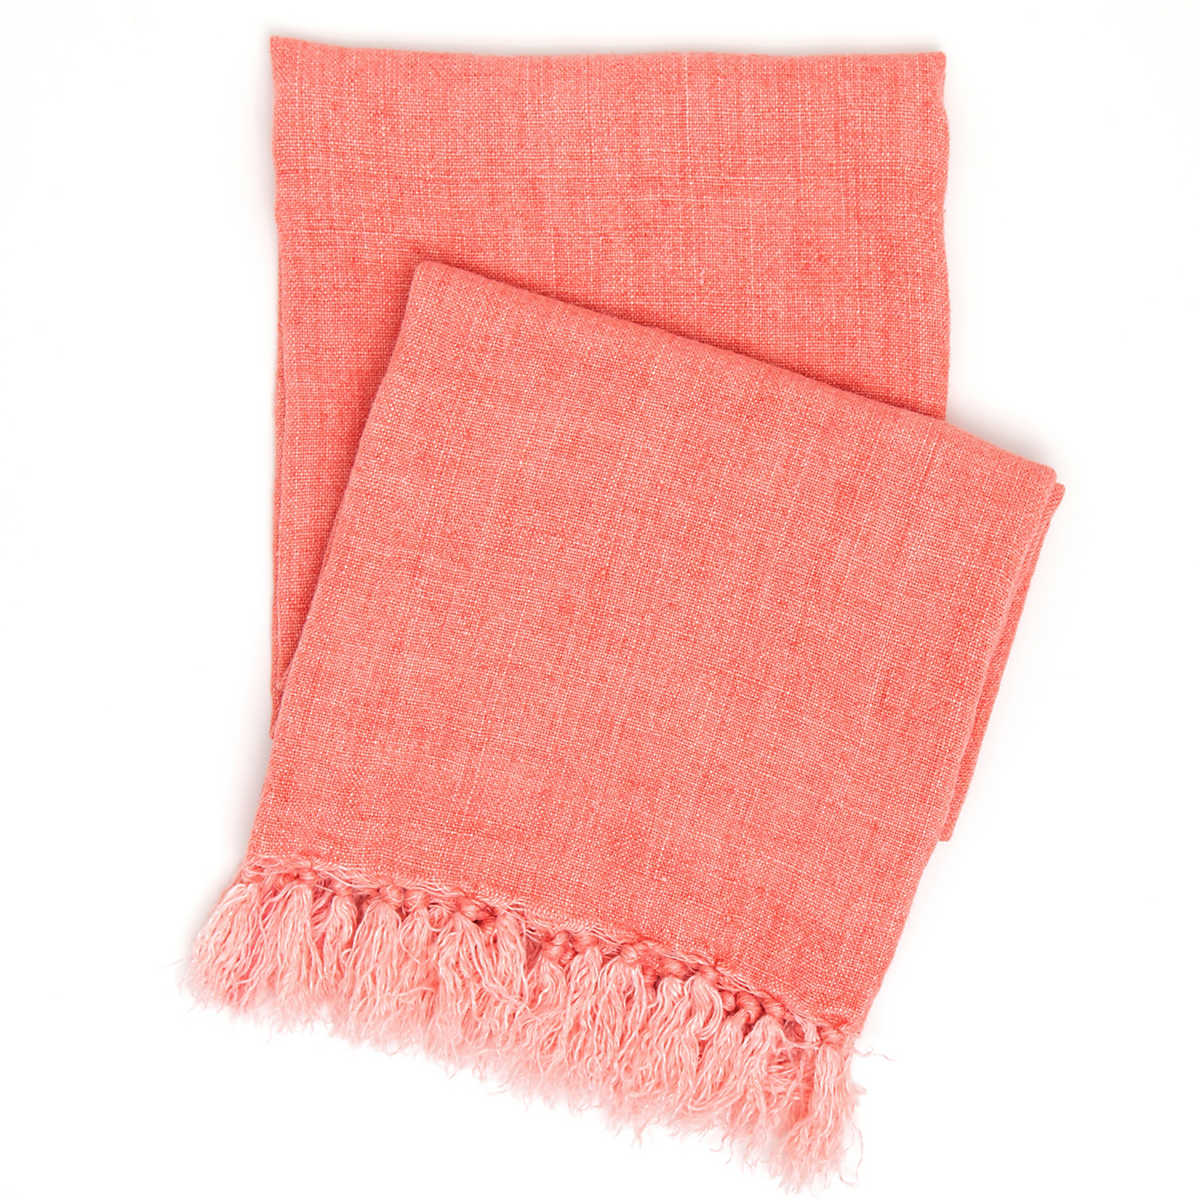 Laundered Linen Coral Throw Pine Cone Hill